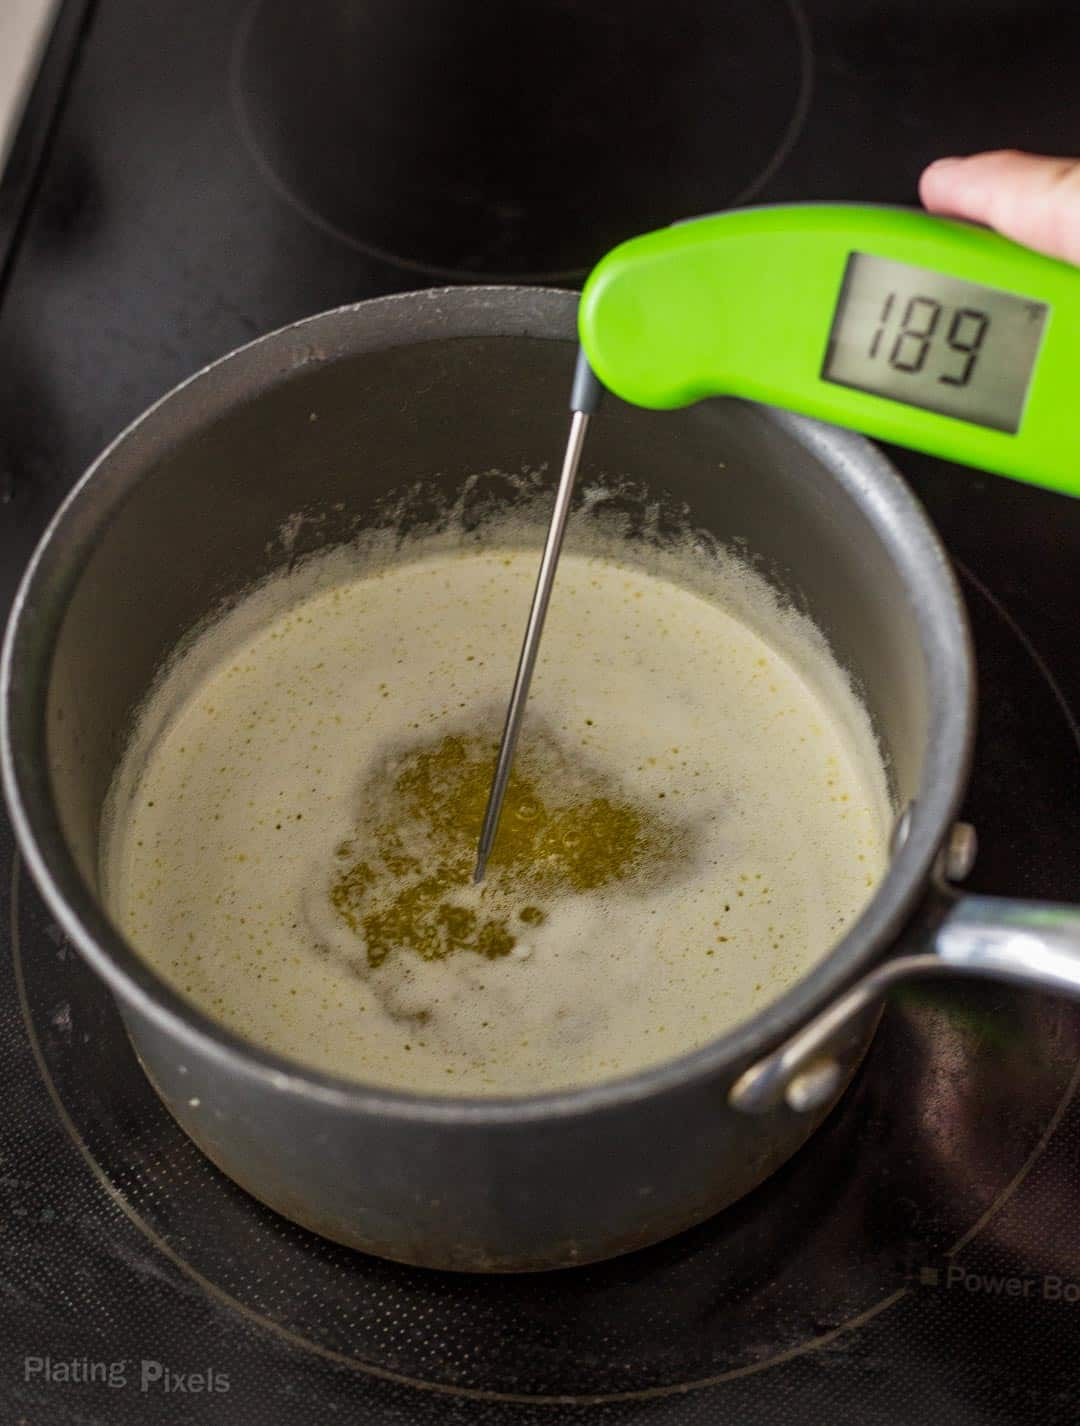 Using an instant-read thermometer to check temperature of melted butter